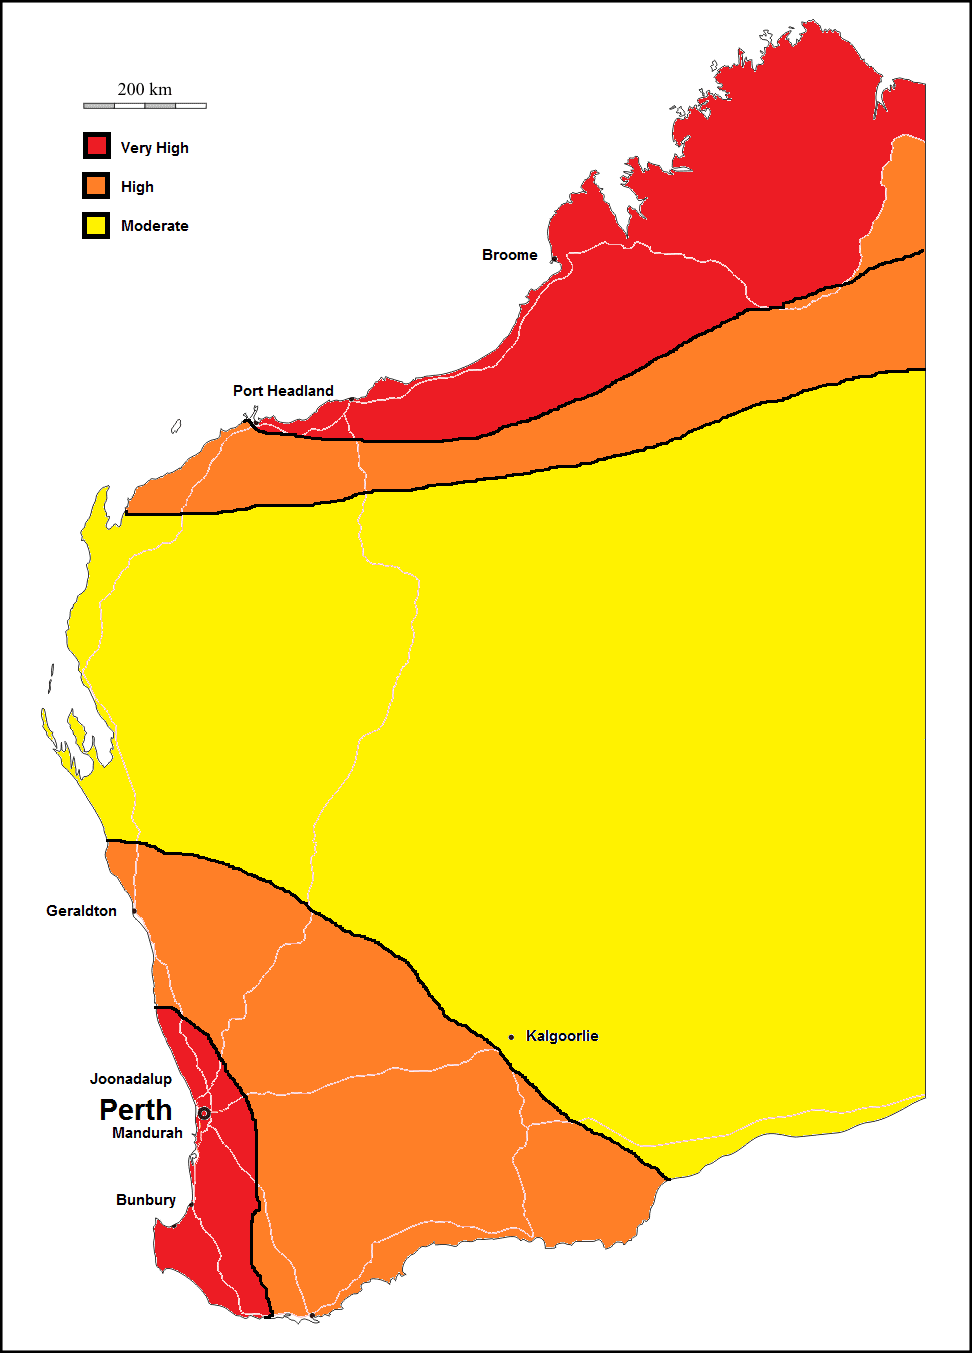 Termite risk area map of Western Australia on perthshire scotland map, australia and surrounding area map, western region map, perth washington map, melbourne map, sydney map, seoul south korea area map, paris france area map, rail map, australia industry map, perth scotland map, perth uk map, guadalajara mexico area map, new zealand australia map, medford oregon area map, tasmania map, brisbane australia area map, anchorage alaska area map, janus rock australia map, glasgow scotland area map,